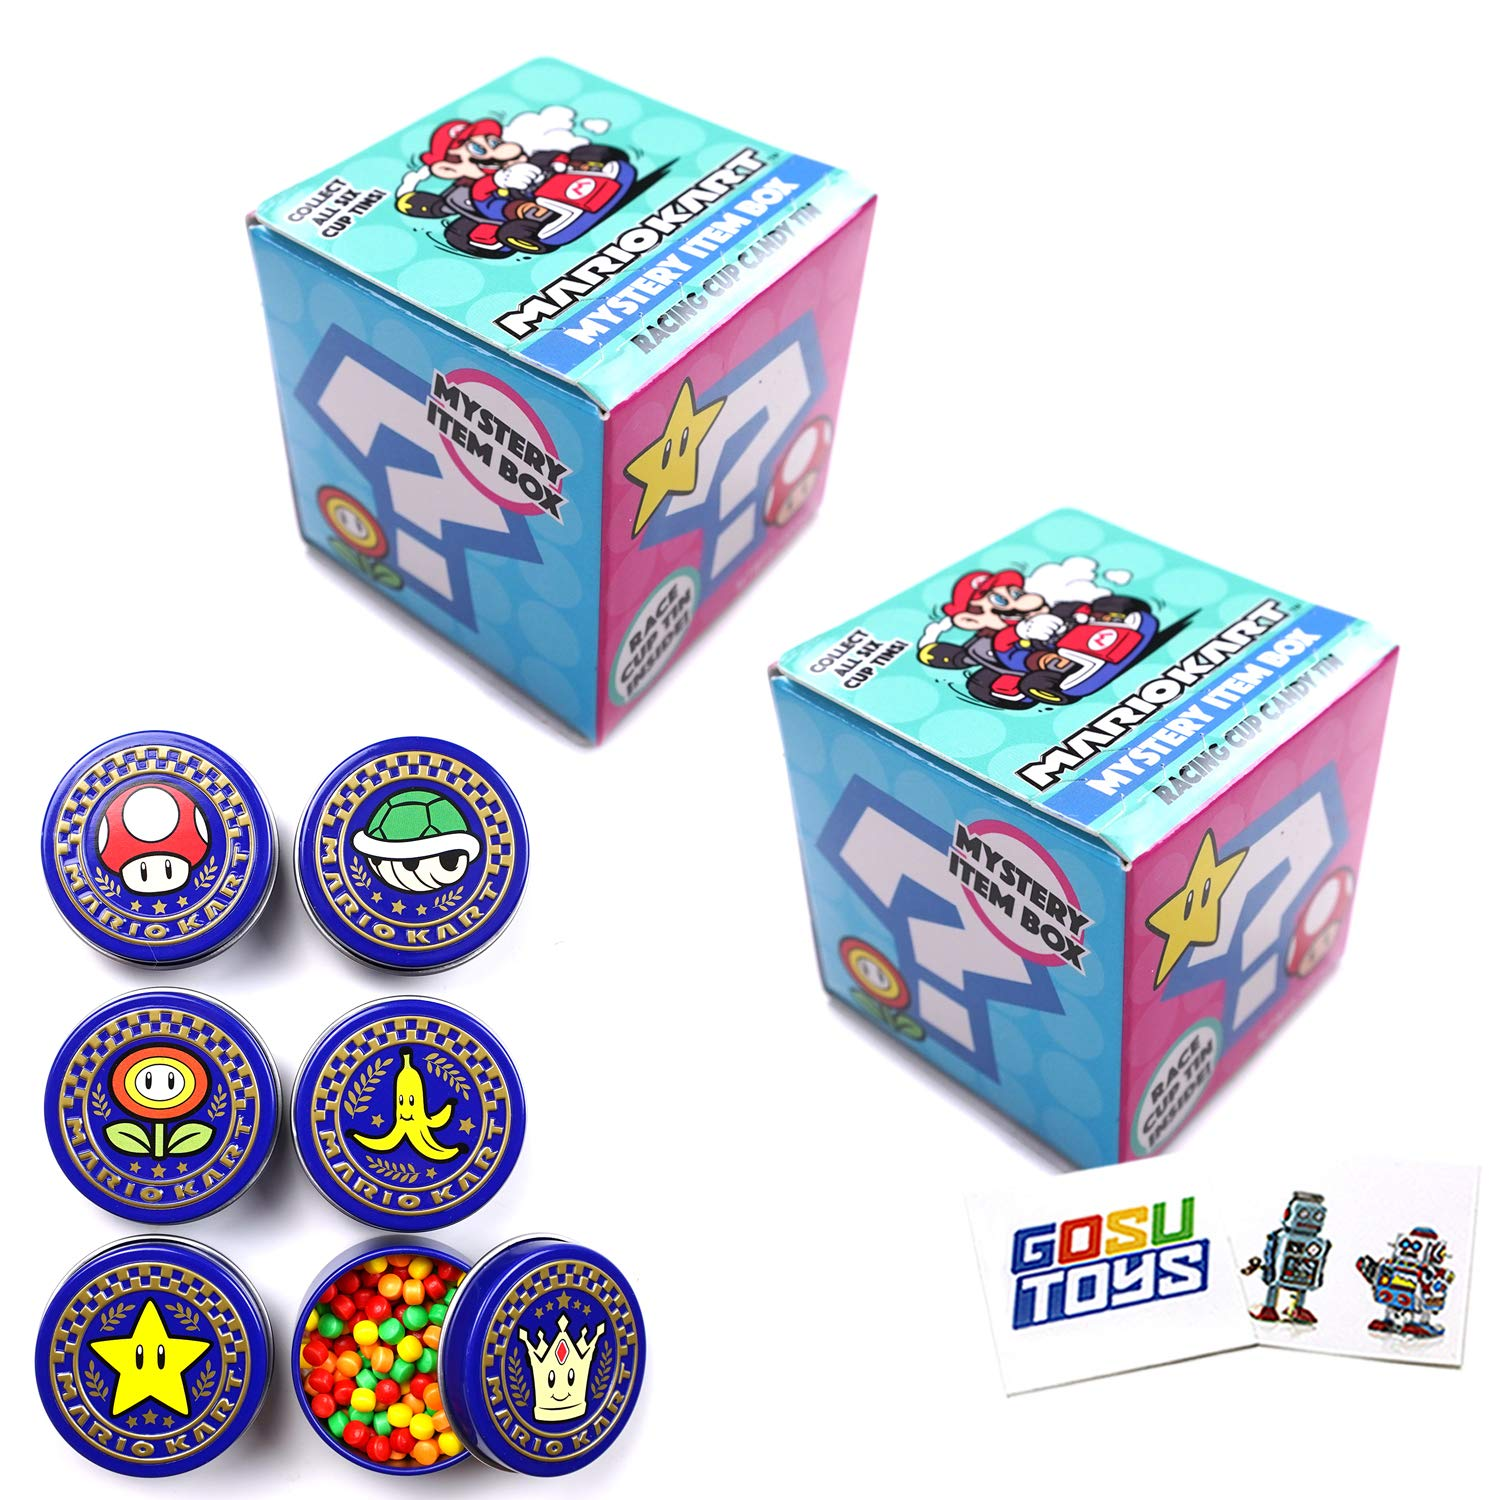 Mario Kart Mystery Item Box Racing cup Candy Tin (2pack) with 2 Gosu Toys Stickers